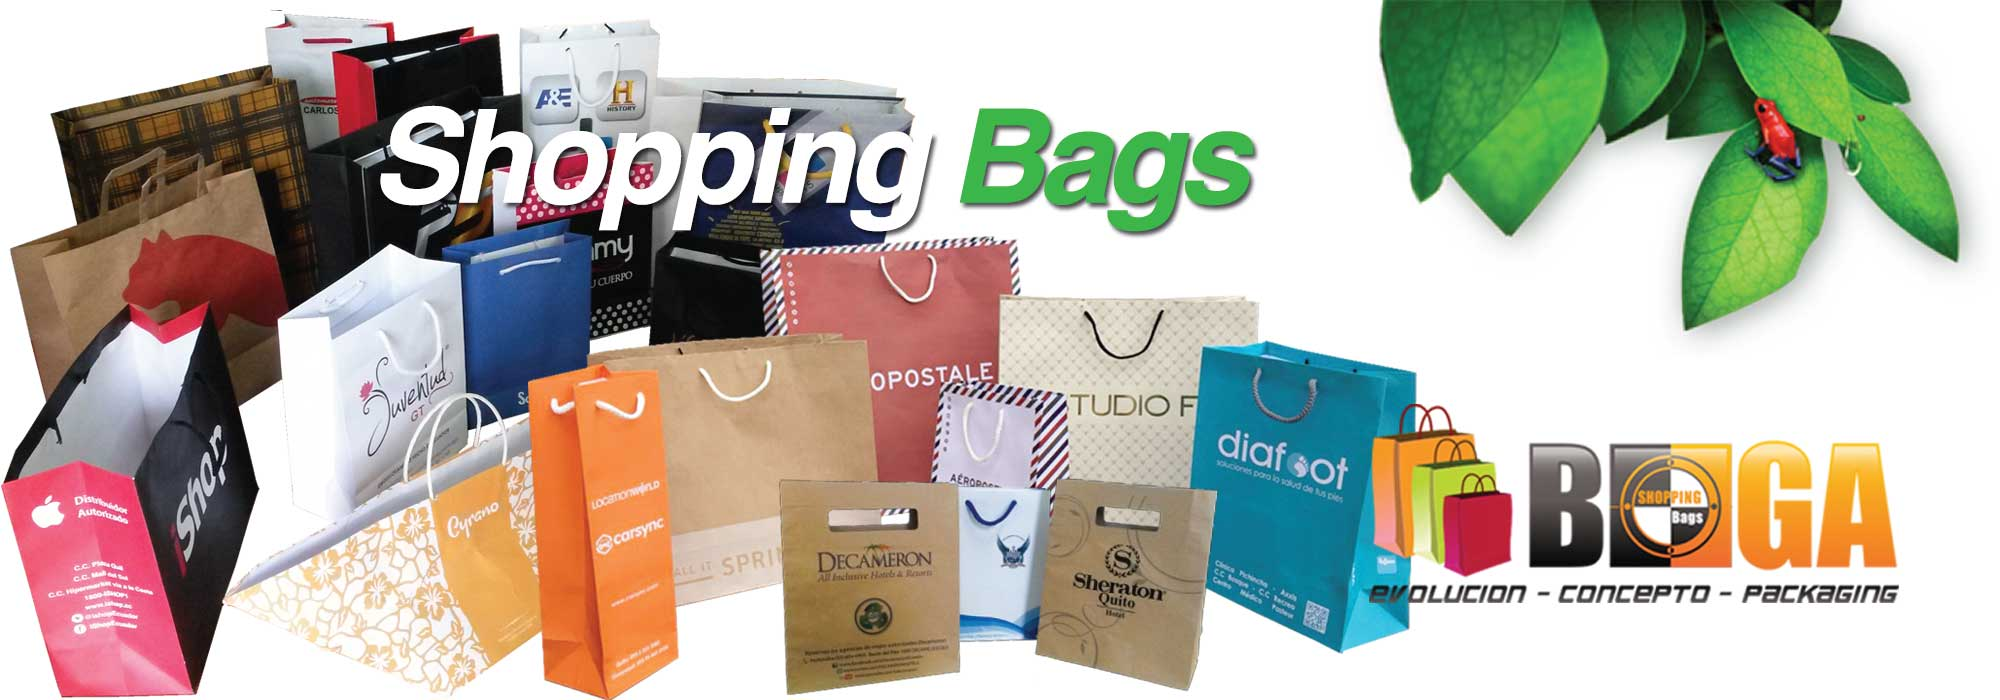 shopping-bags-boga-fundas-de-papel